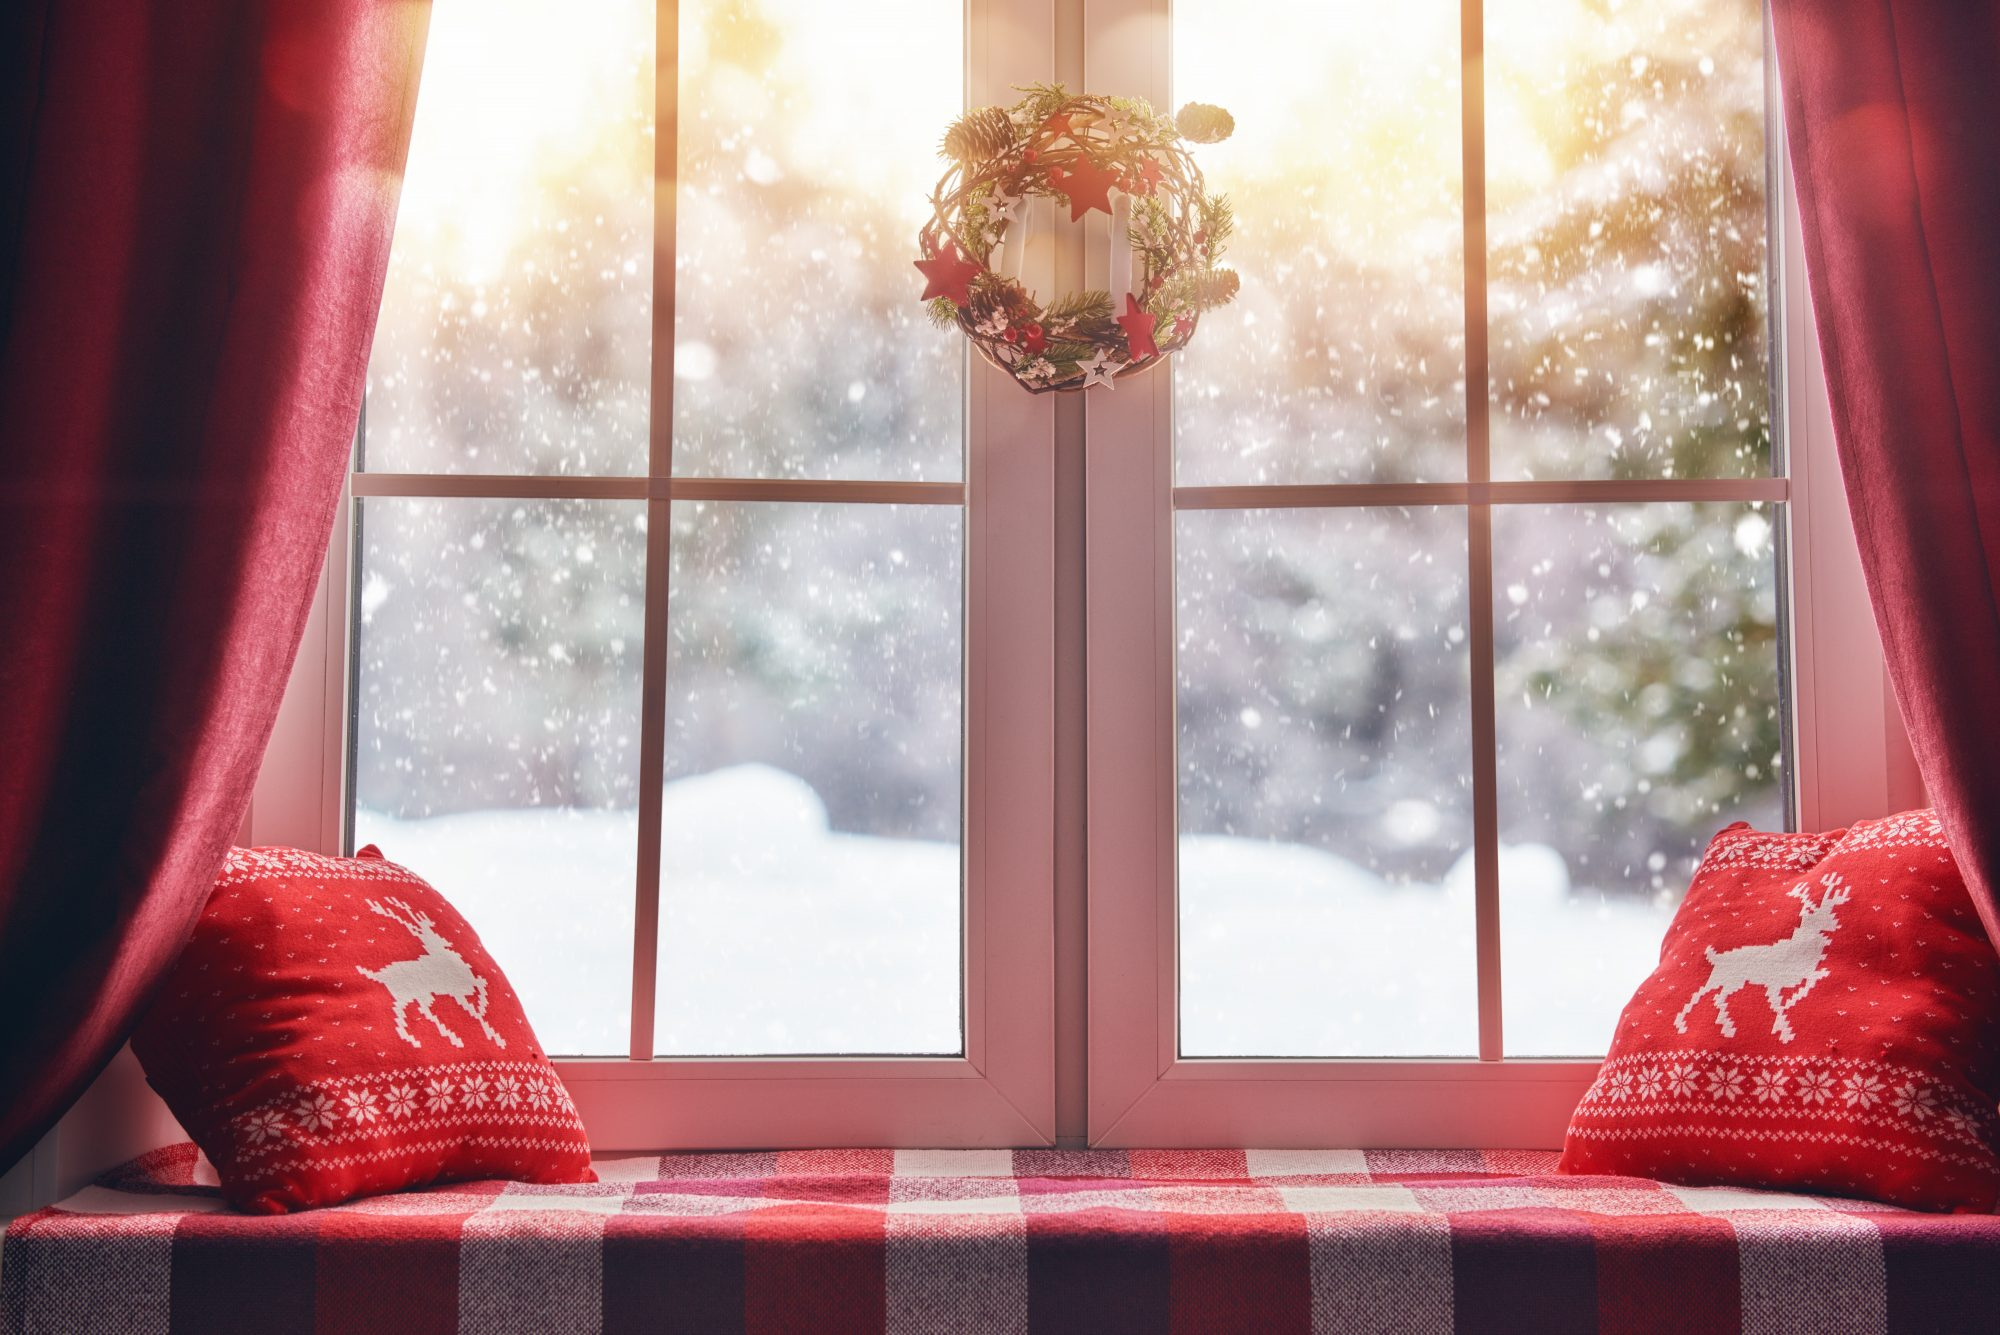 How to Prepare Your Windows for Winter Weather